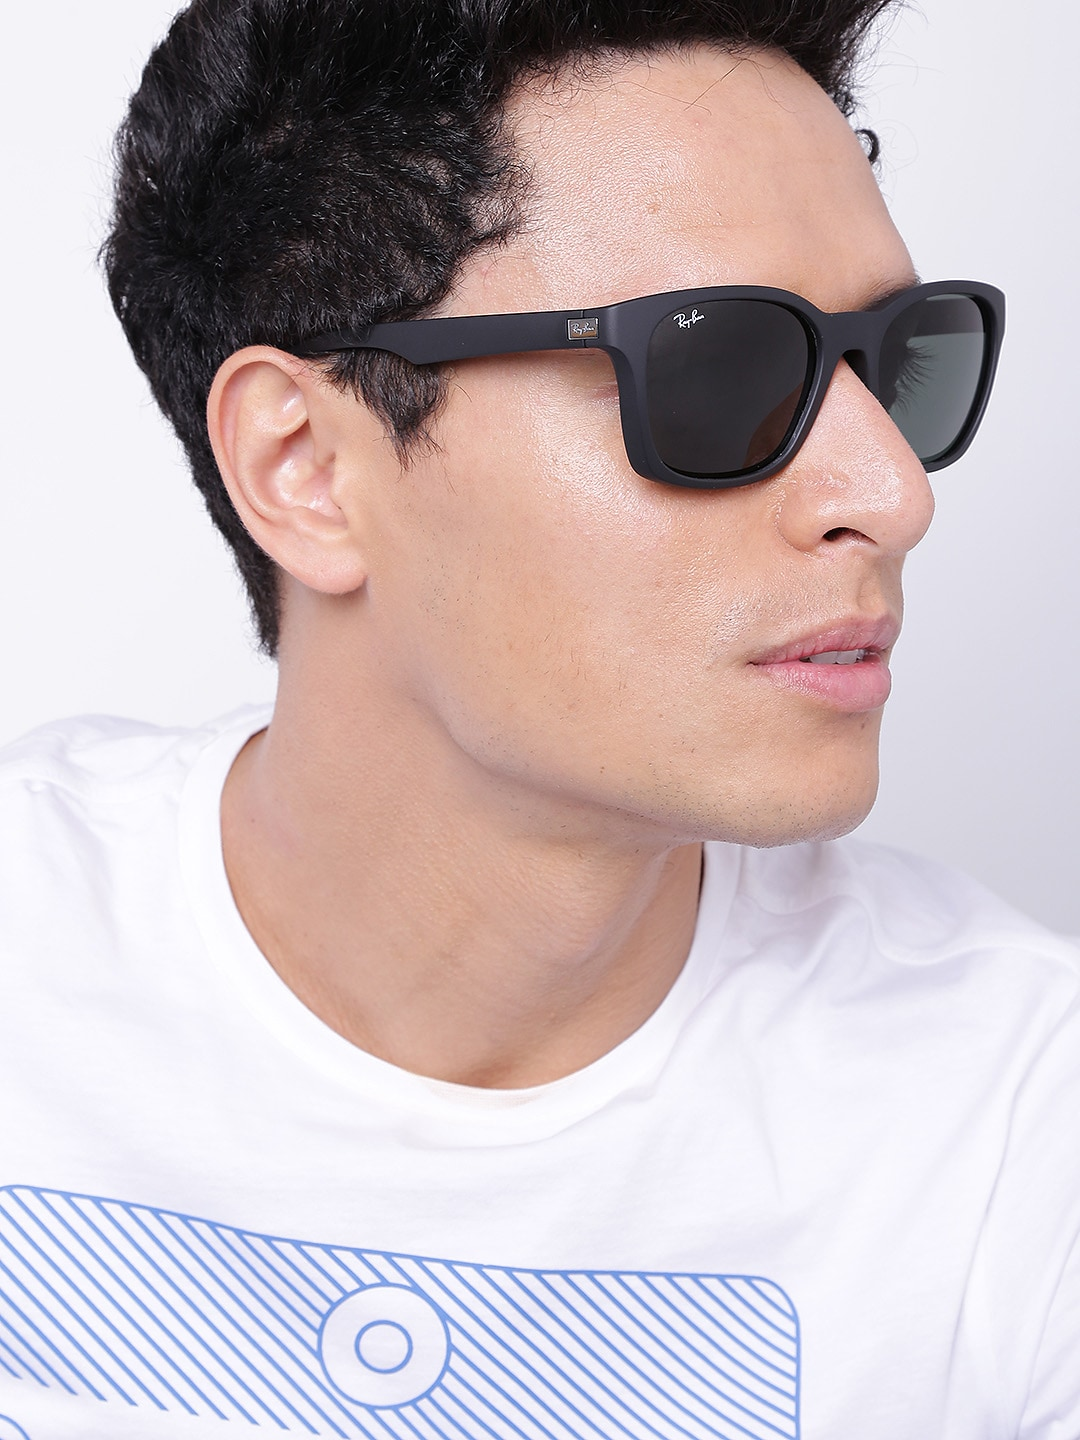 sunglasses men  Buy Ray Ban Men Square Sunglasses - Sunglasses for Men